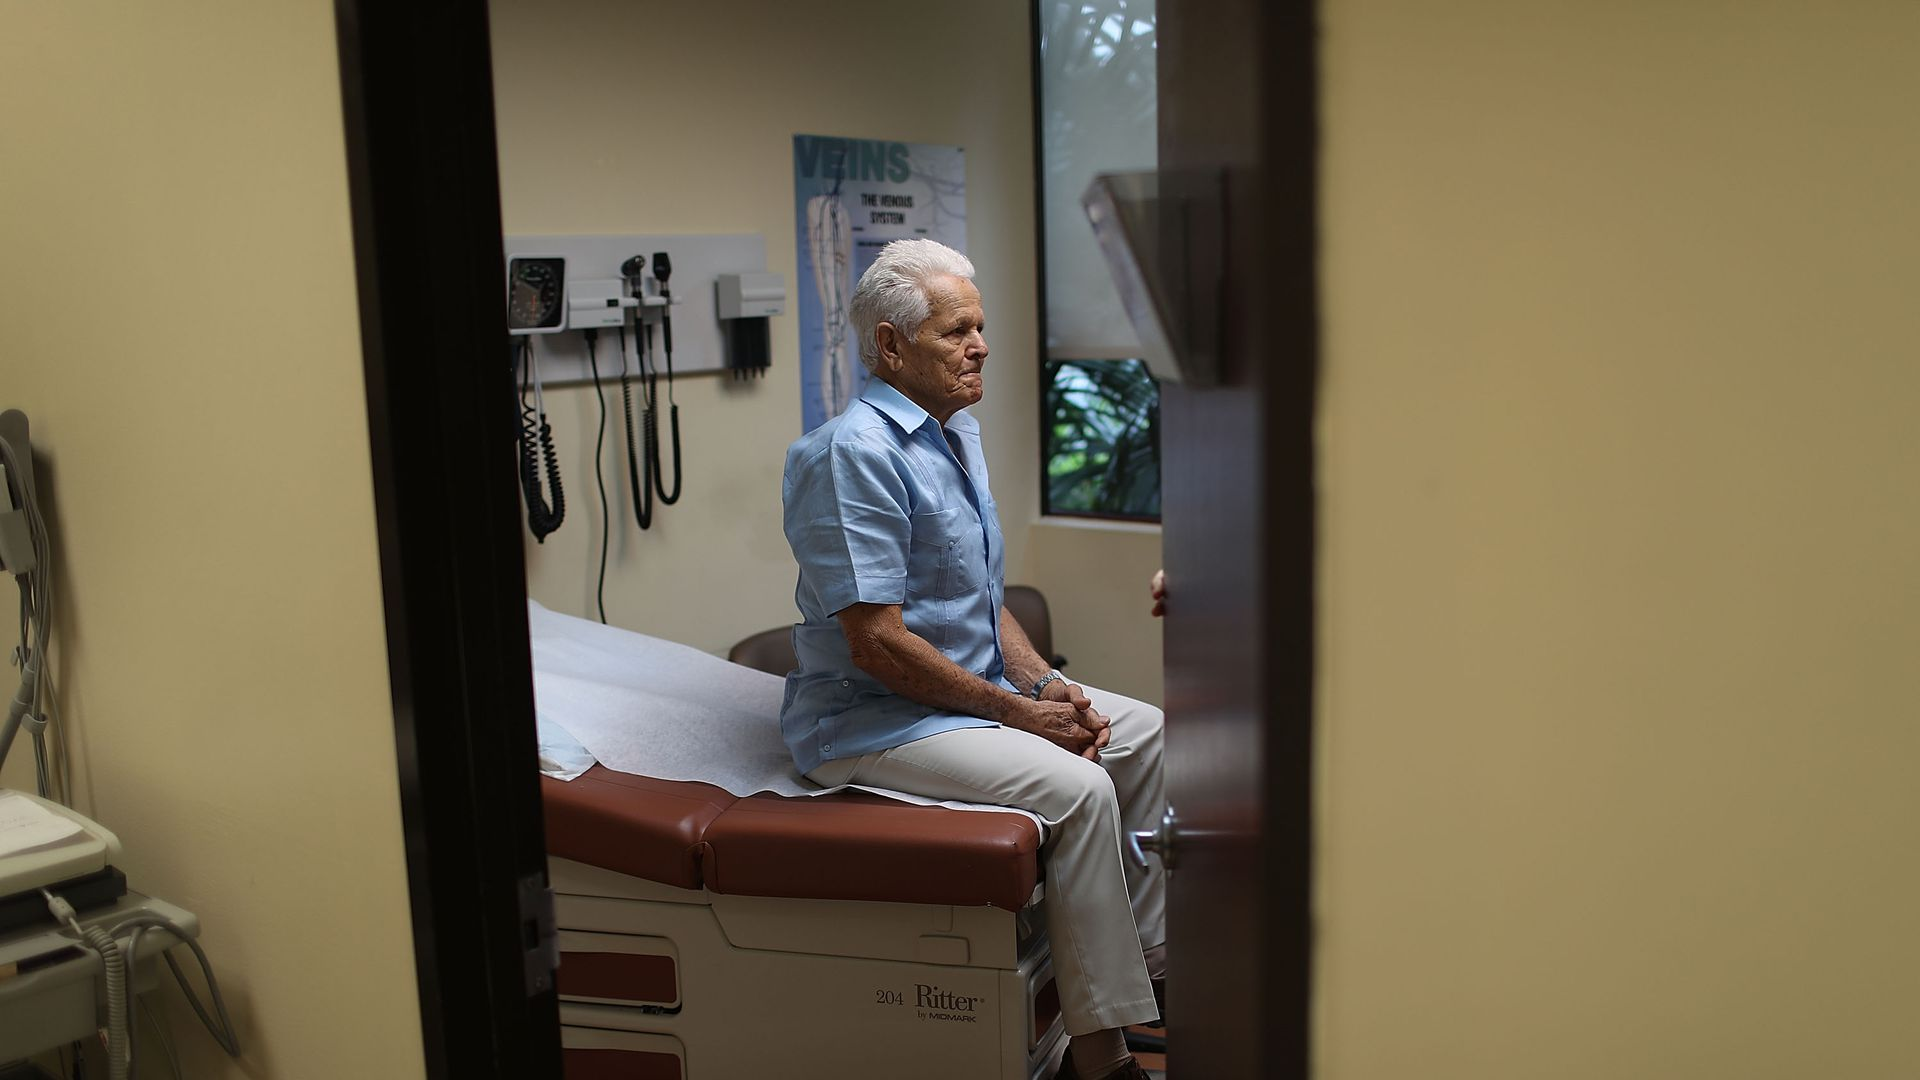 An elderly patients sits in a hospital exam room.